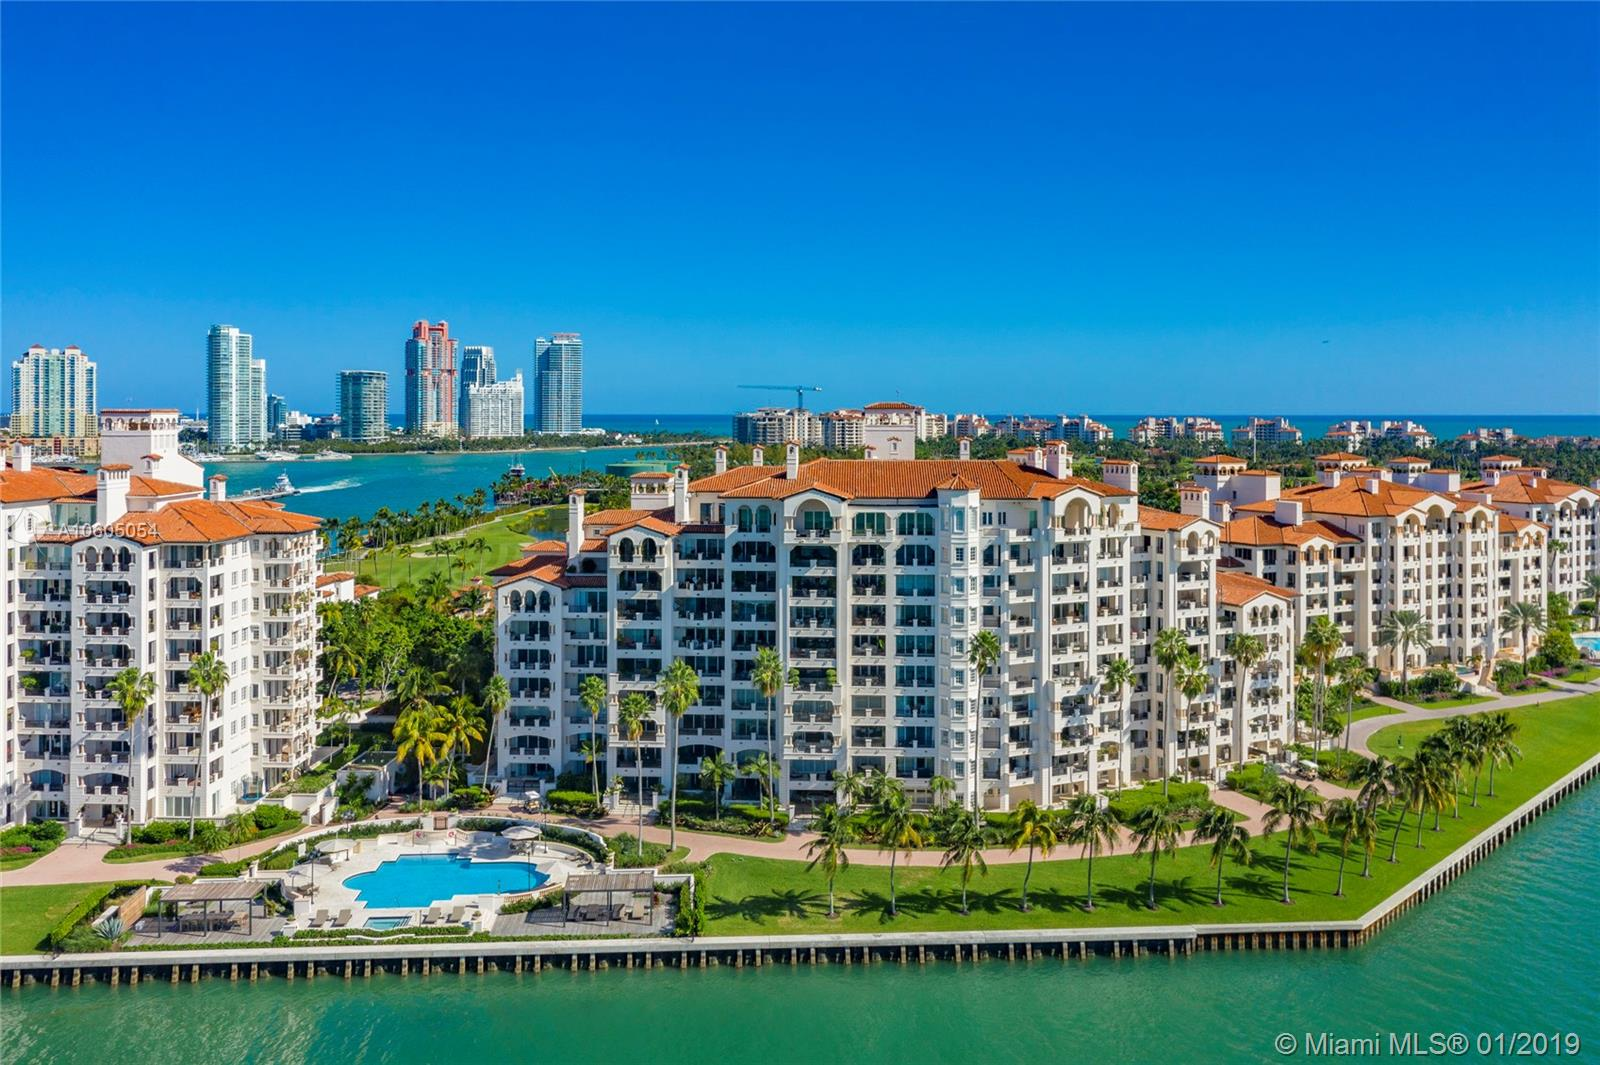 Main Property Image For 5203 Fisher Island Drive #5203